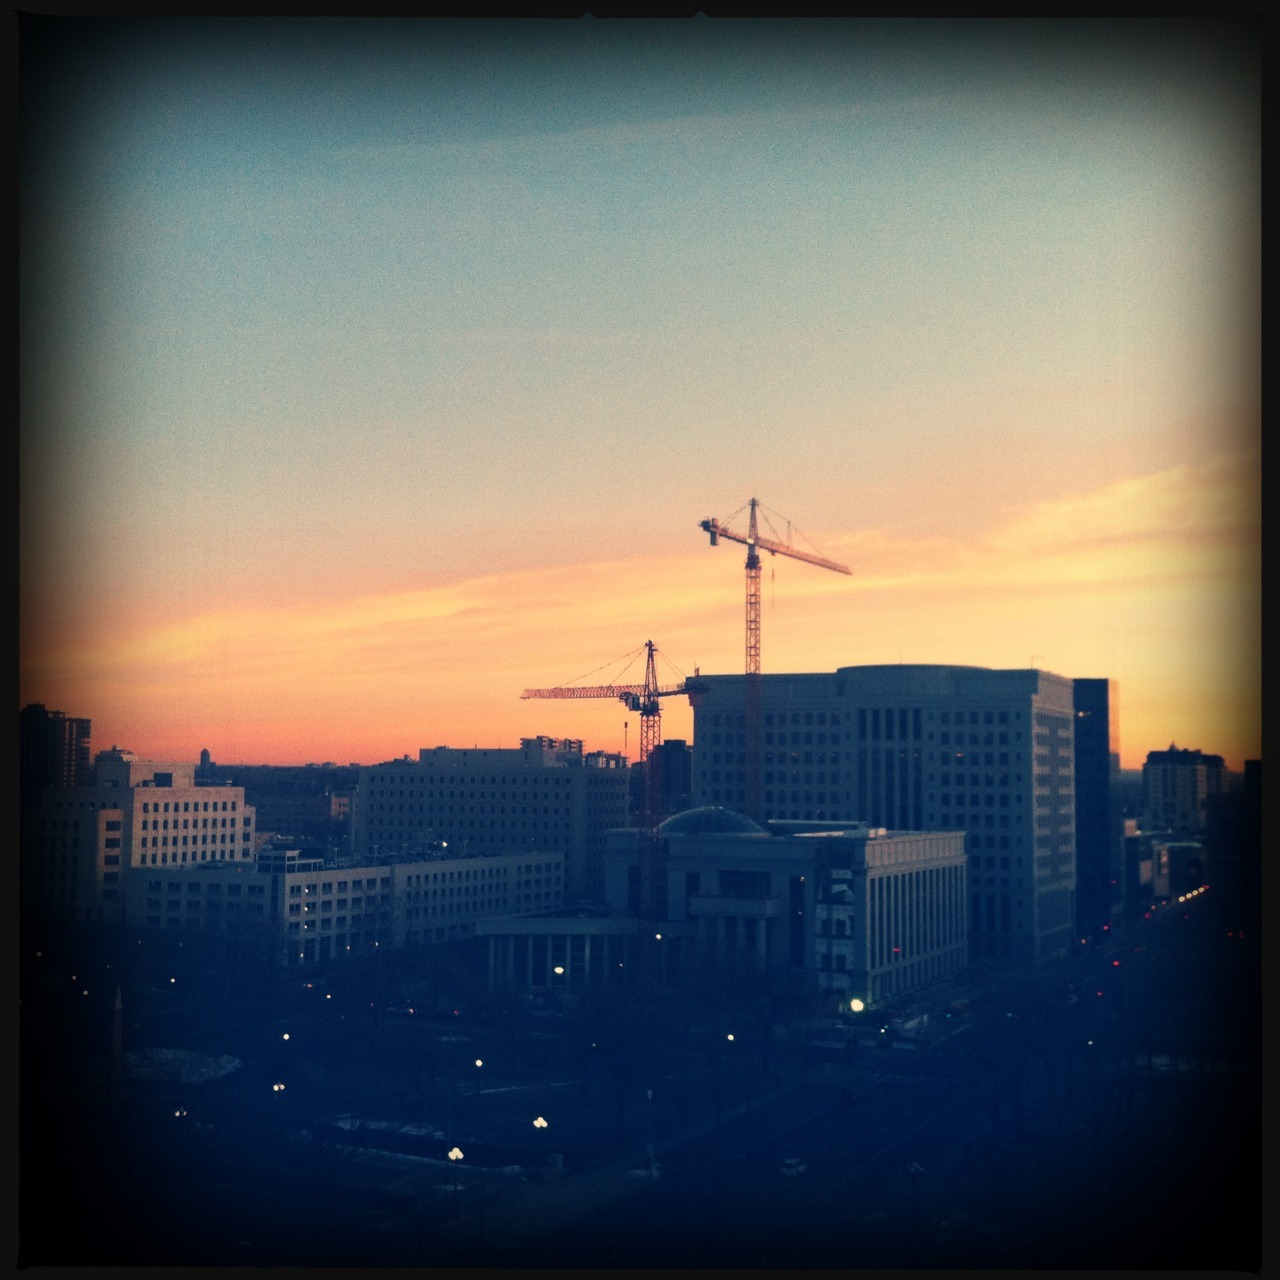 The Cranes, 1/1 Taken with Hipstamatic, Tejas Lens, DC Film, No Flash.